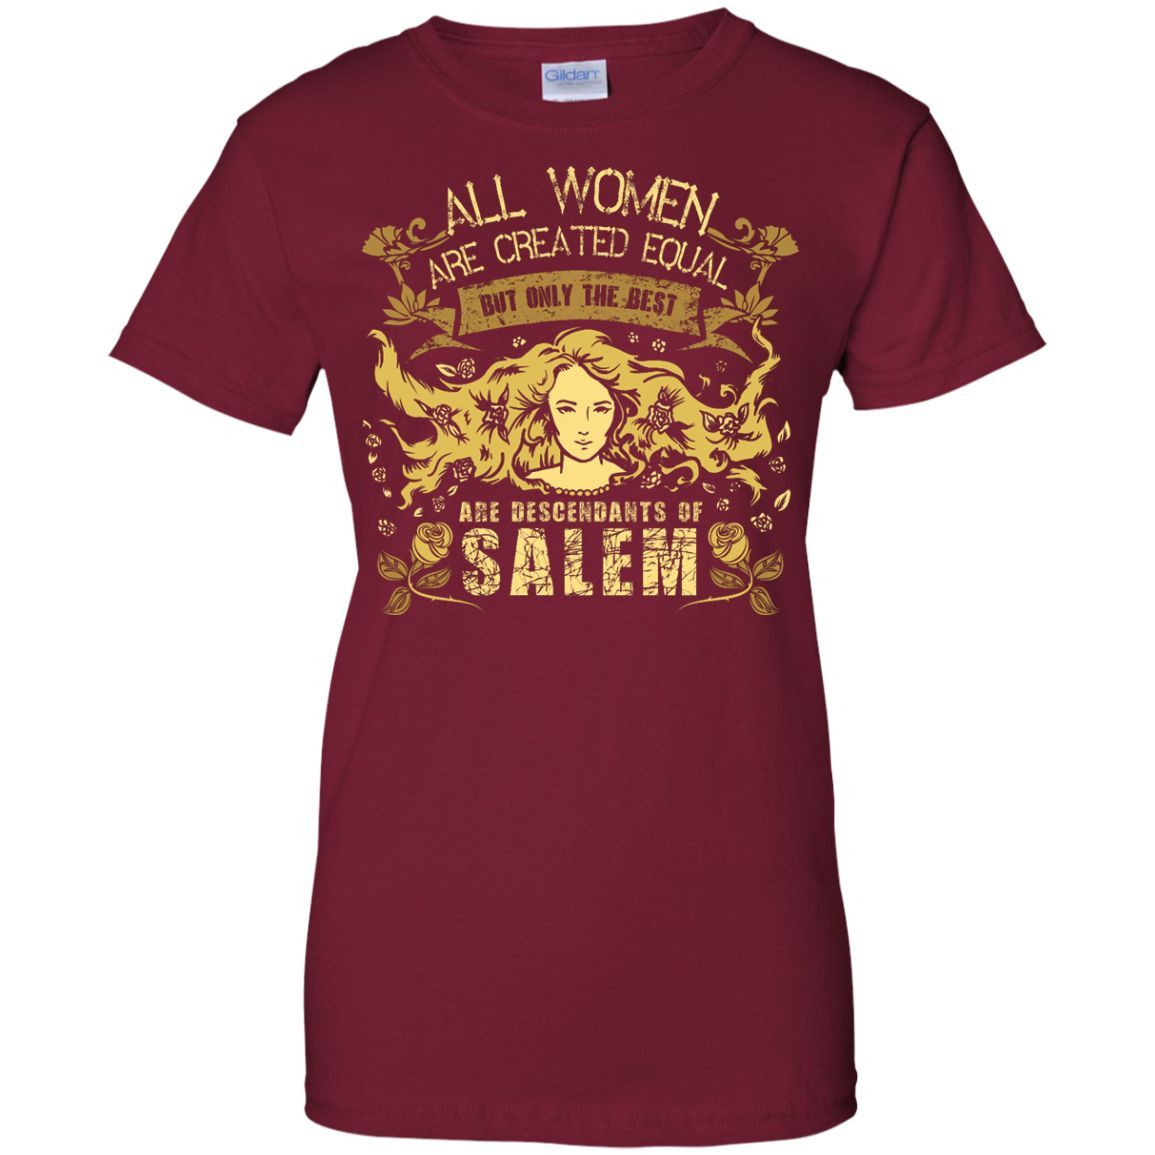 All Women Are Created Equal Women's T-Shirt